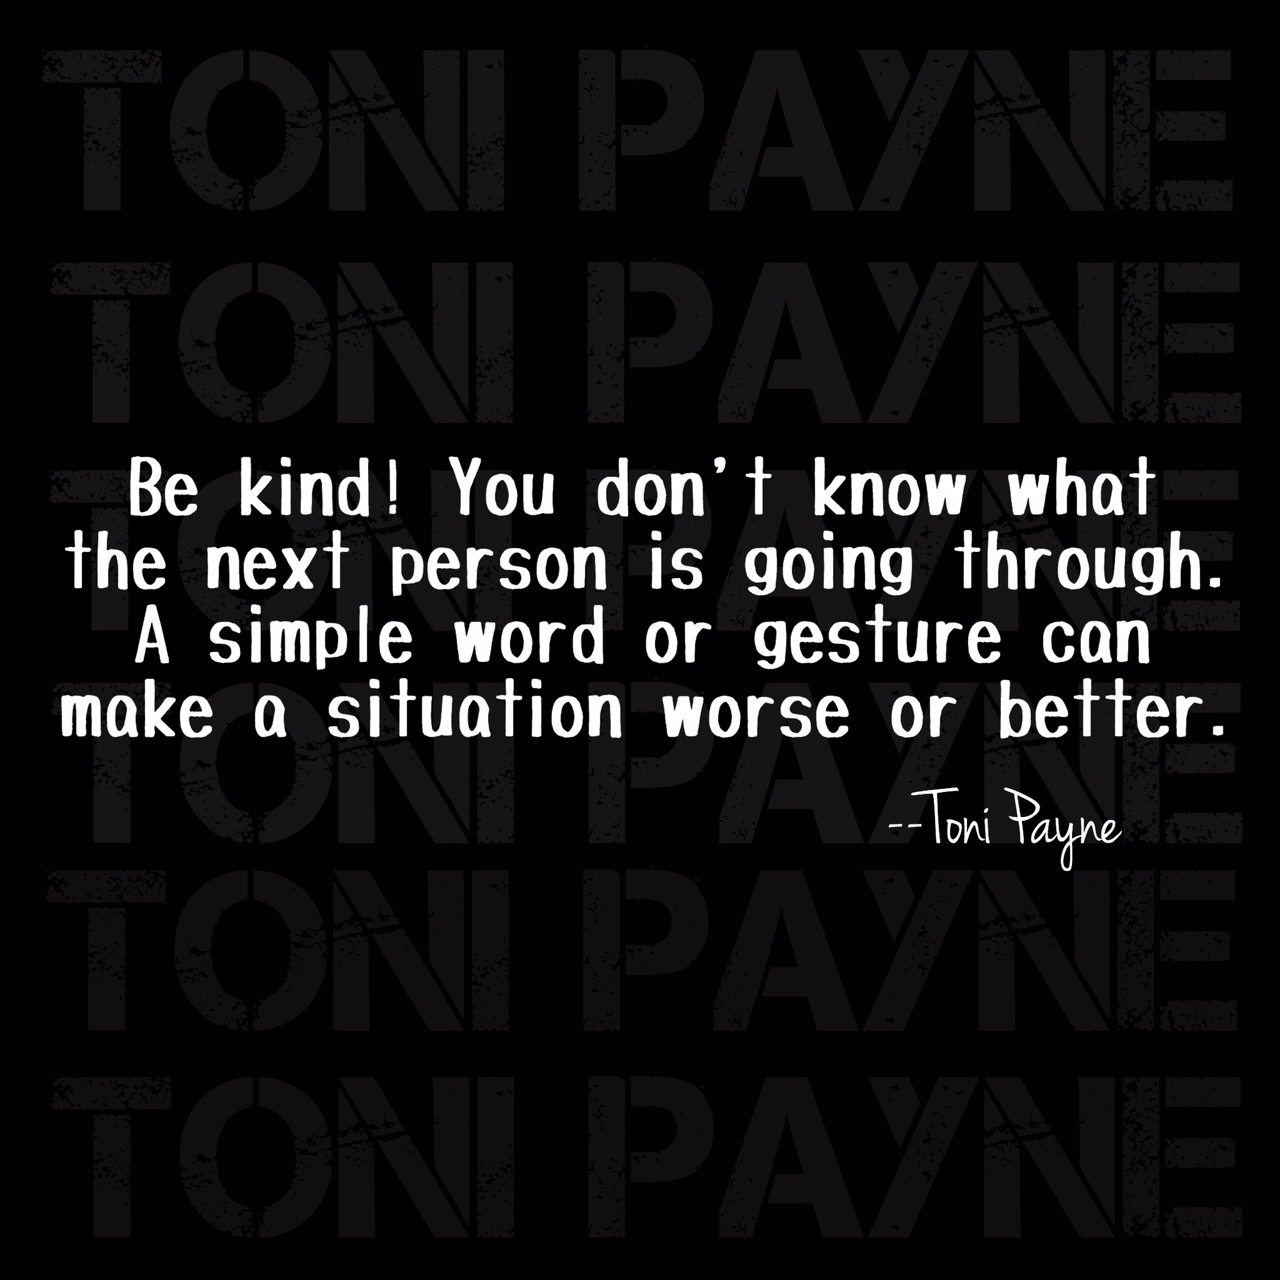 Quote About Kindness Quote About Kindness  Be Kind You Don't Know What. Toni